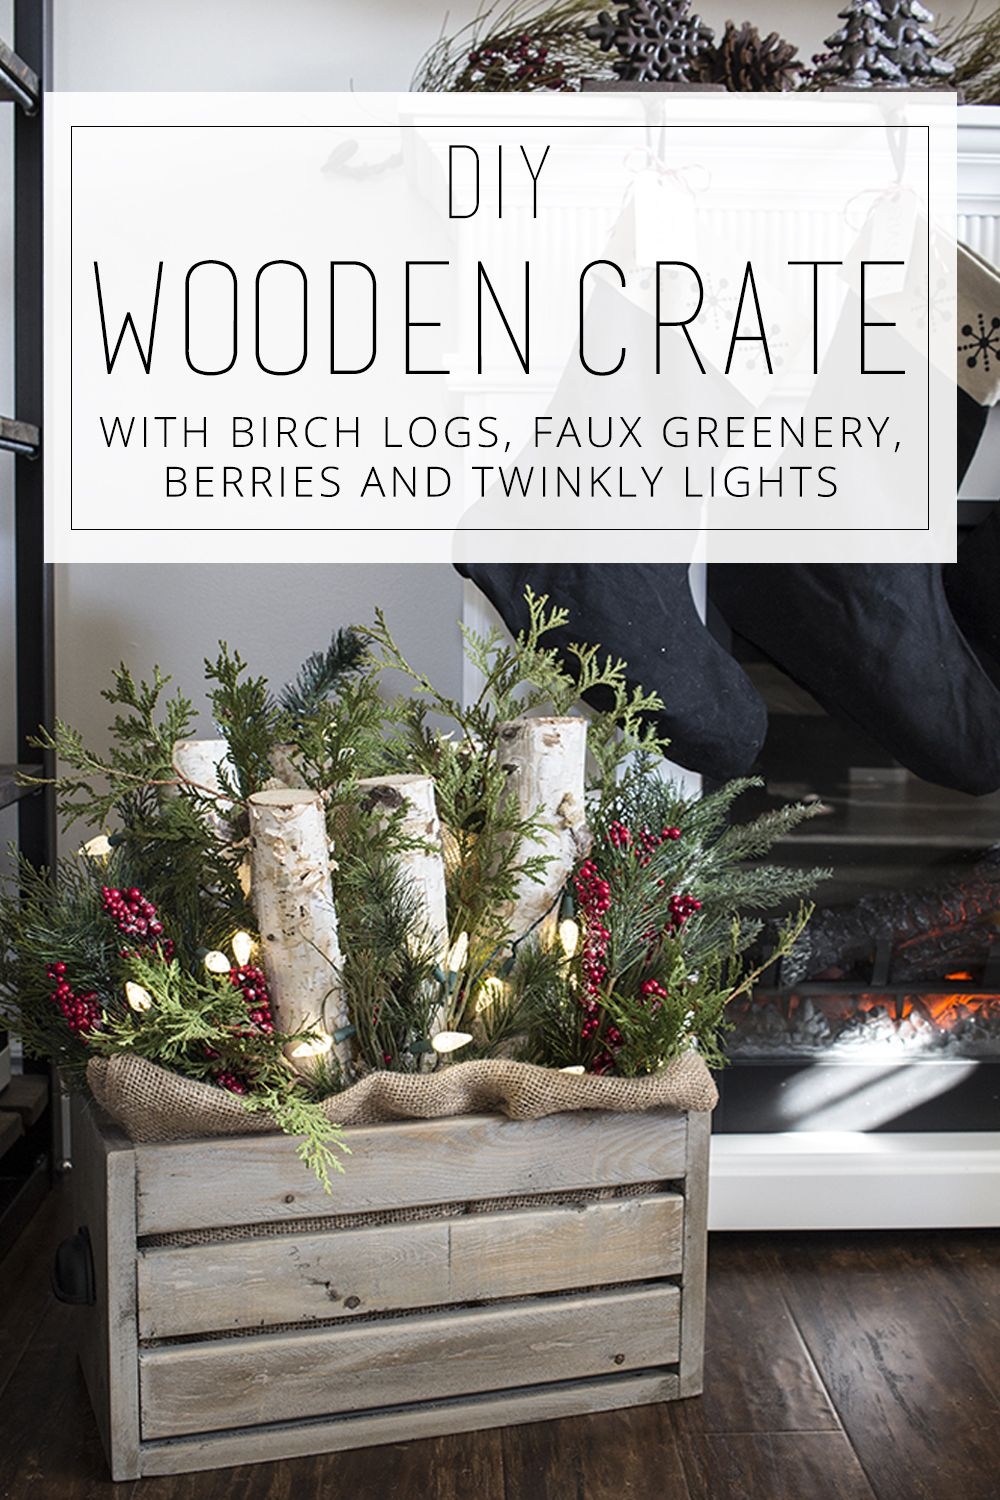 How to Make a Wooden Crate with Logs, Greenery and Lights #farmhousechristmasdecor